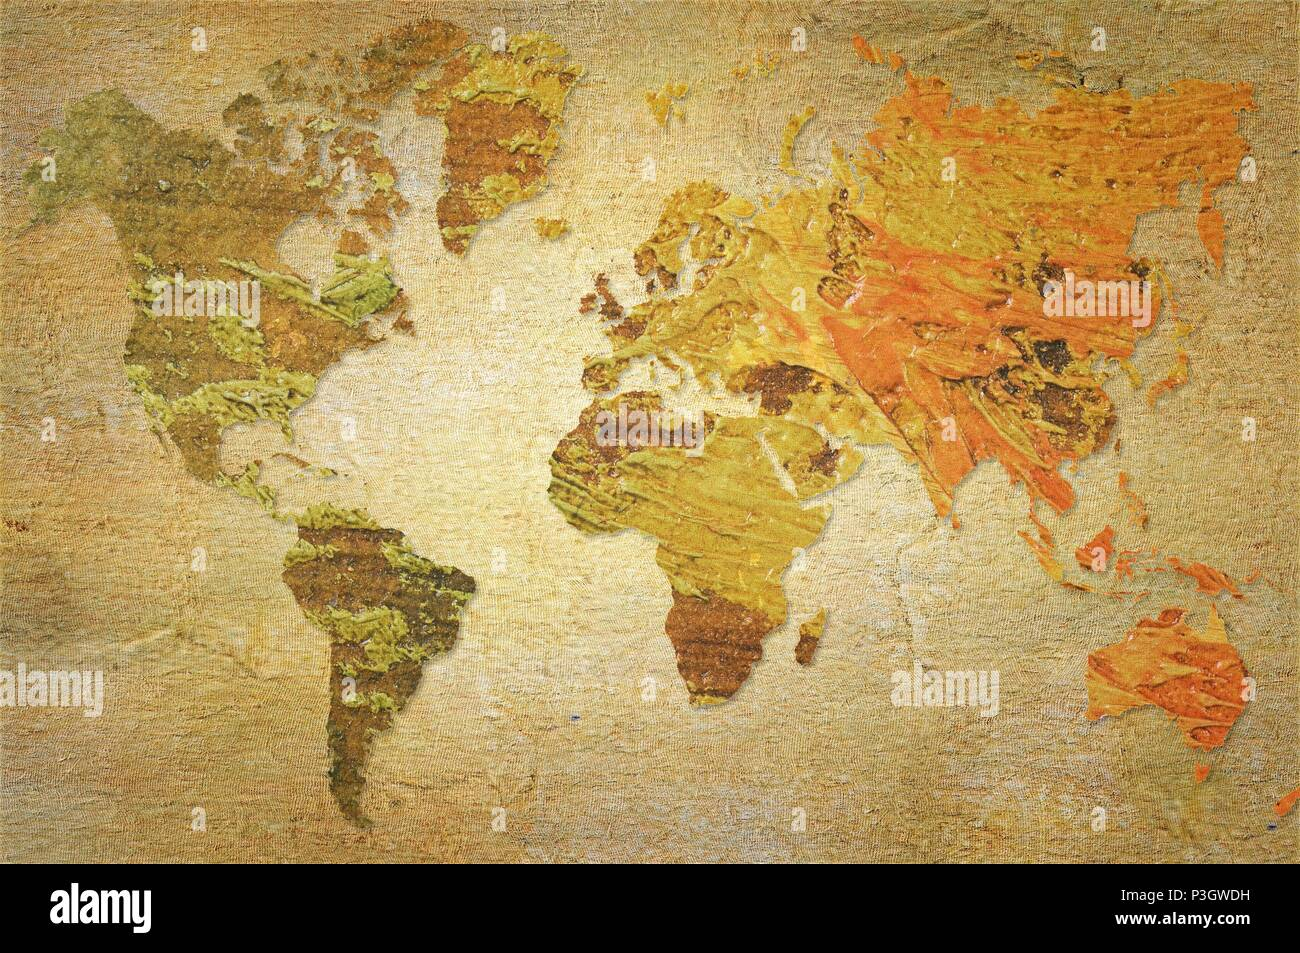 World map made with artistic oil colors on fabric background world map made with artistic oil colors on fabric background elements of this image furnished by nasa gumiabroncs Images